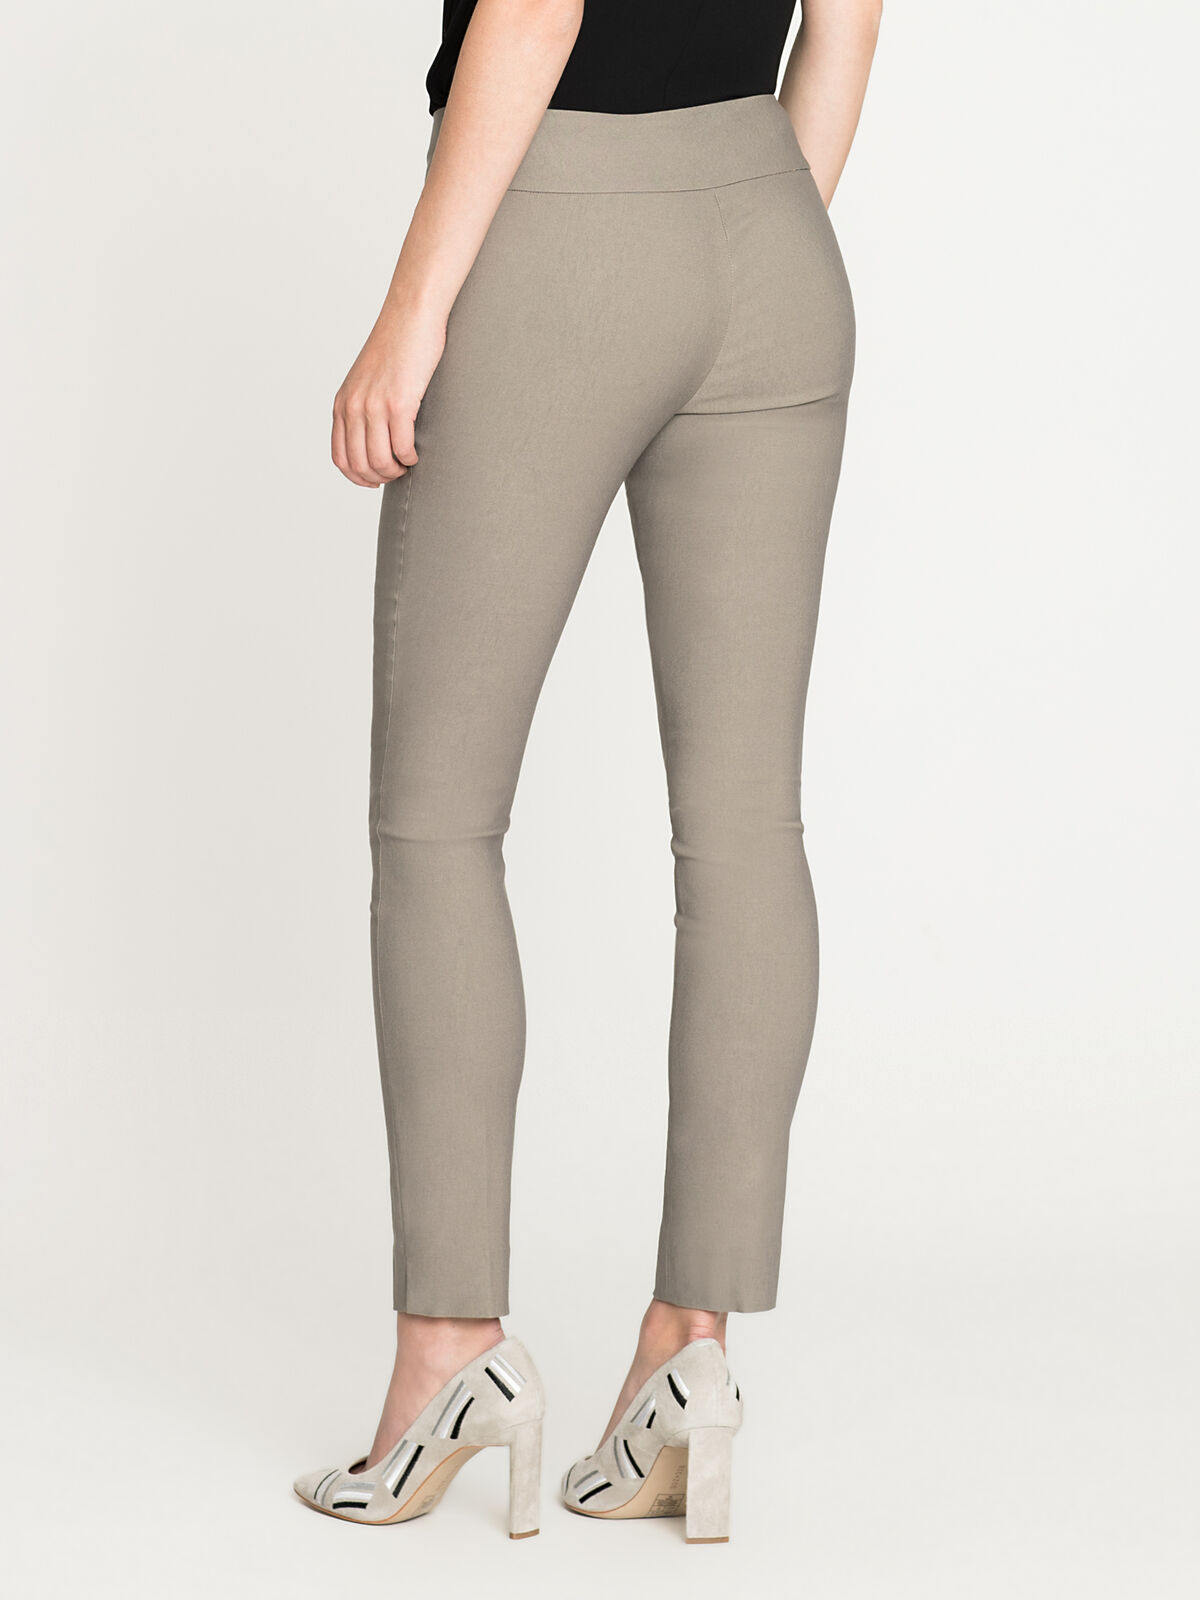 Slim Wonderstretch Pant